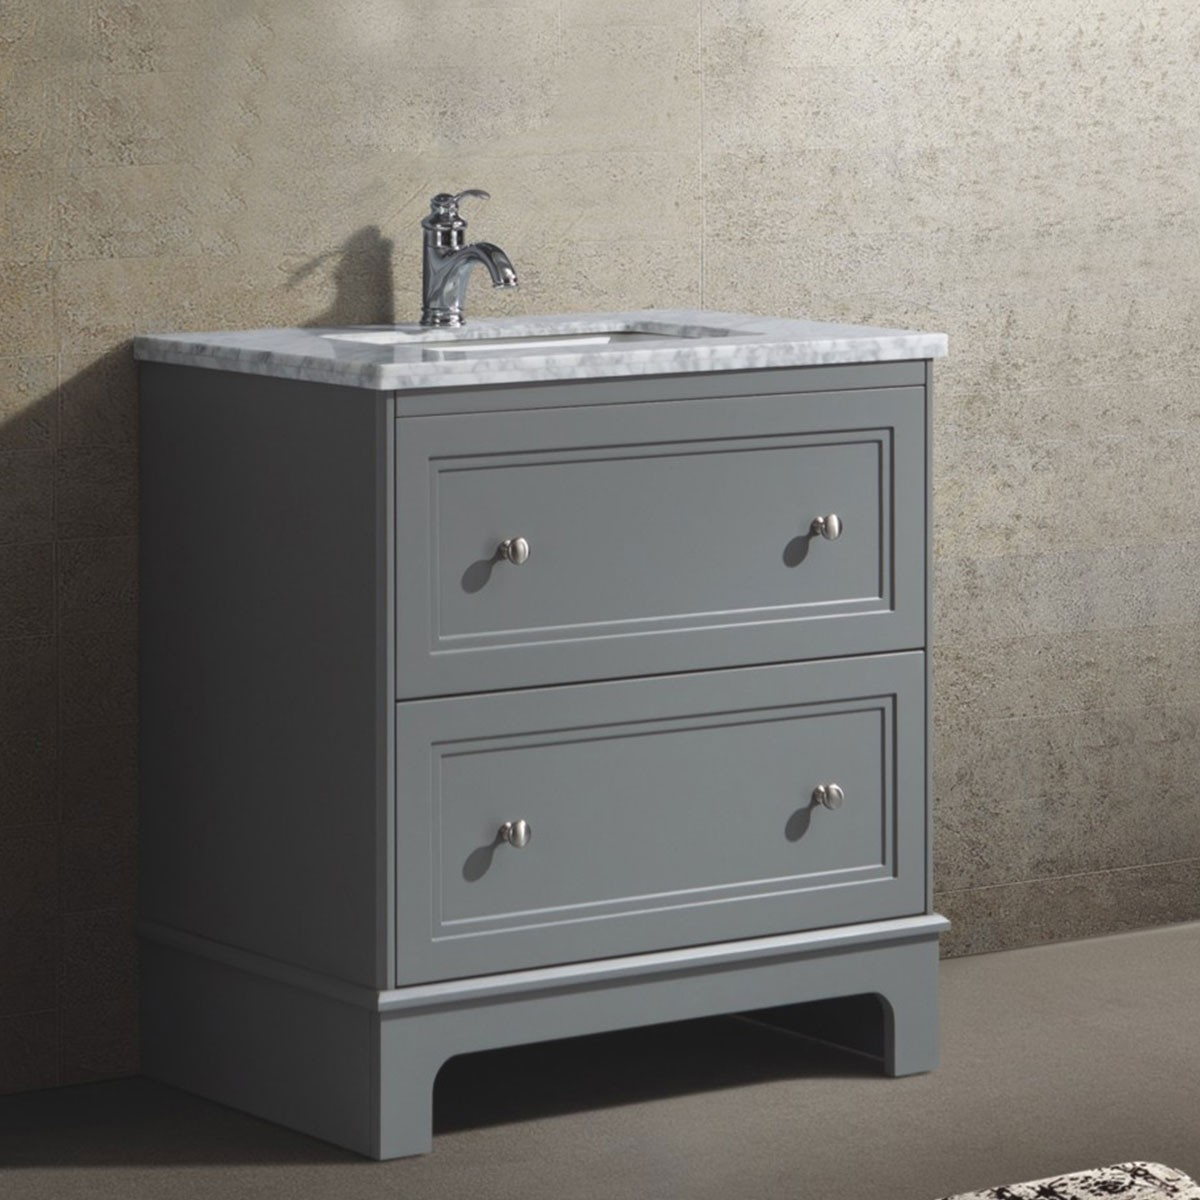 31 In. Freestanding Bathroom Vanity (BR8002-V)